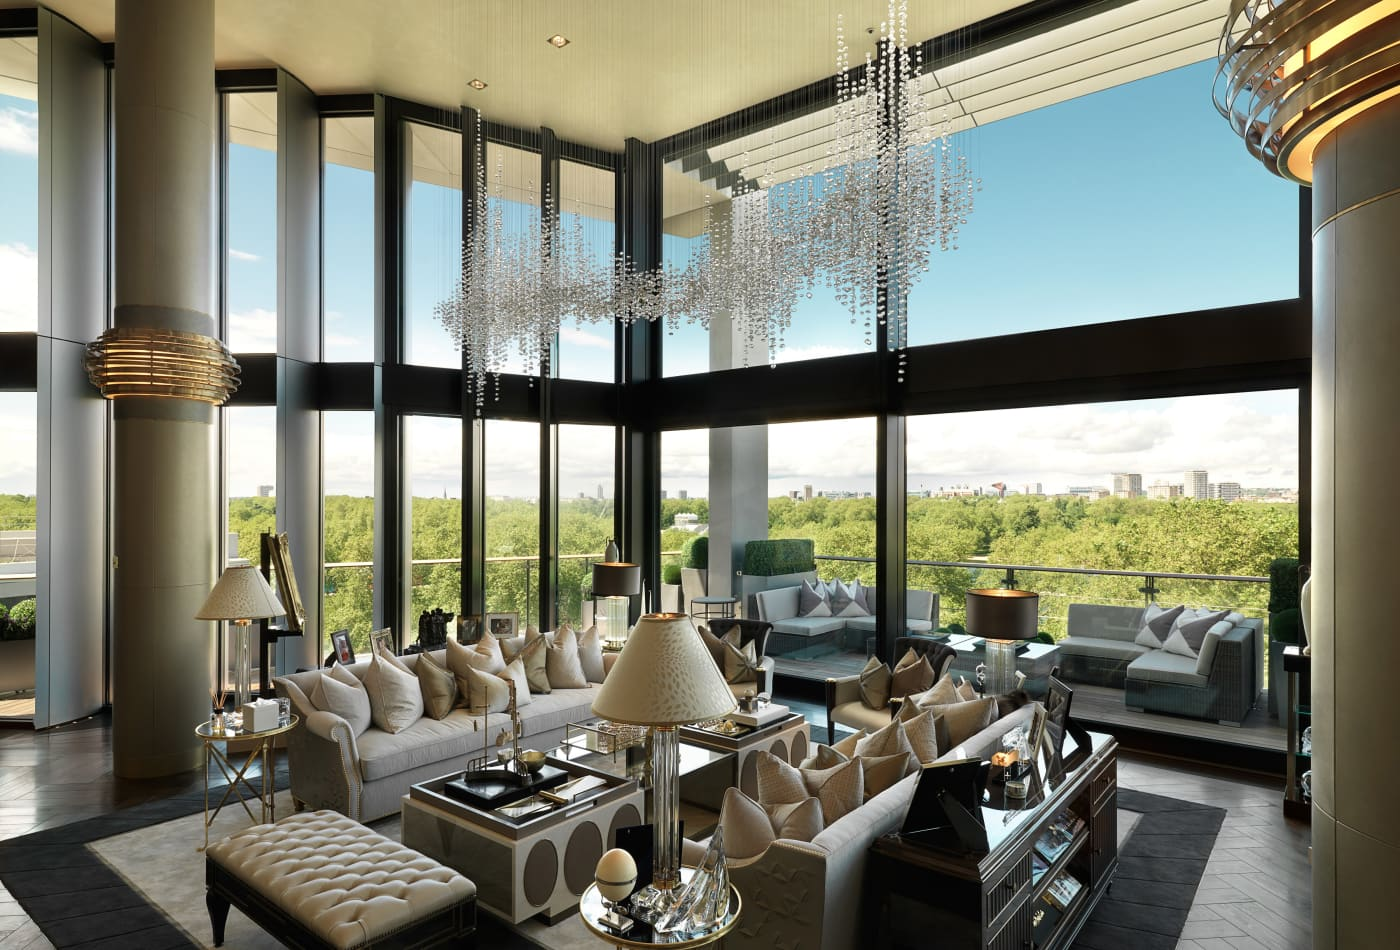 London's most expensive penthouse offered in a whisper listing for $247 million